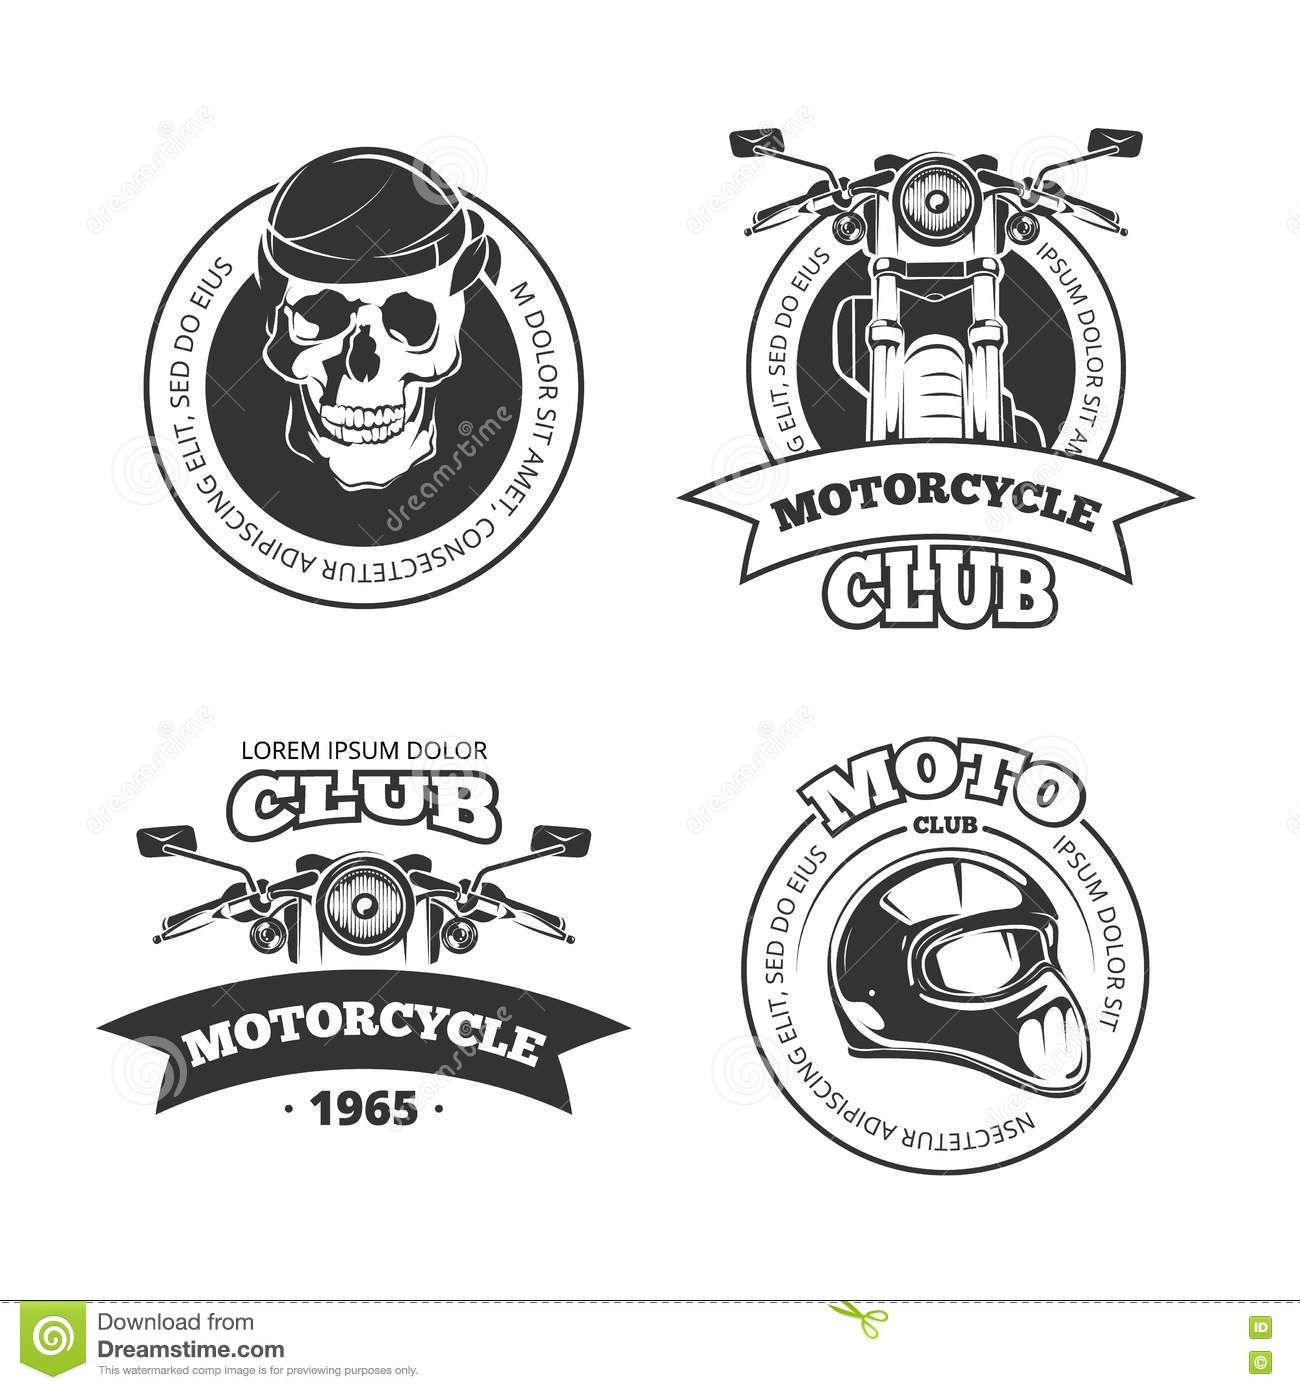 Vector Motorcycle Sketch With Gothic Handwritten Lettering